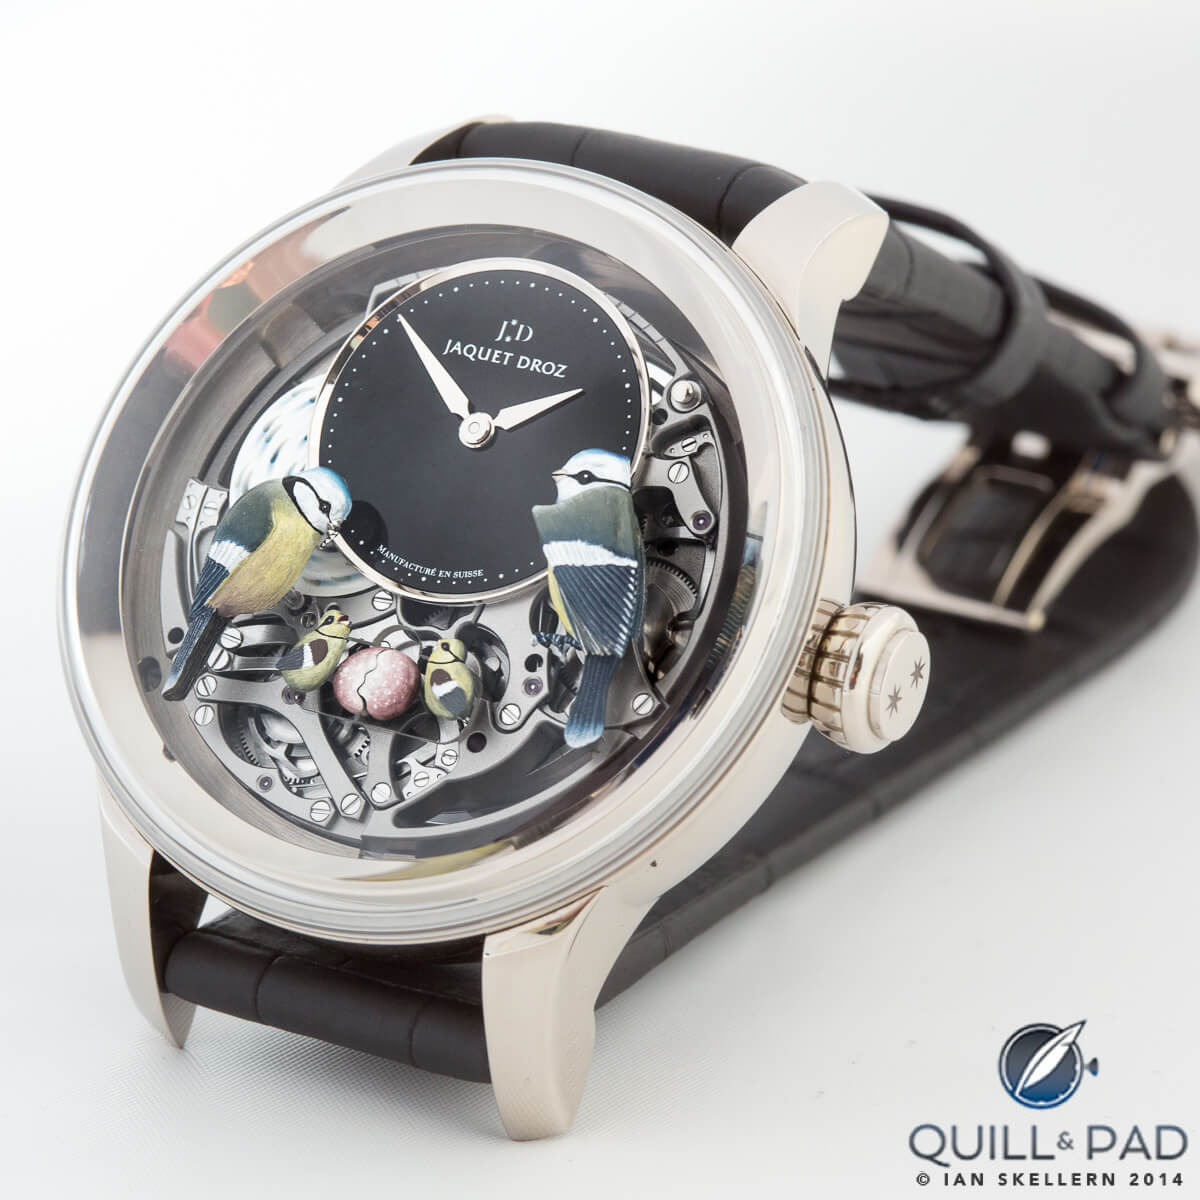 Bird Repeater with automaton by Jaquet Droz